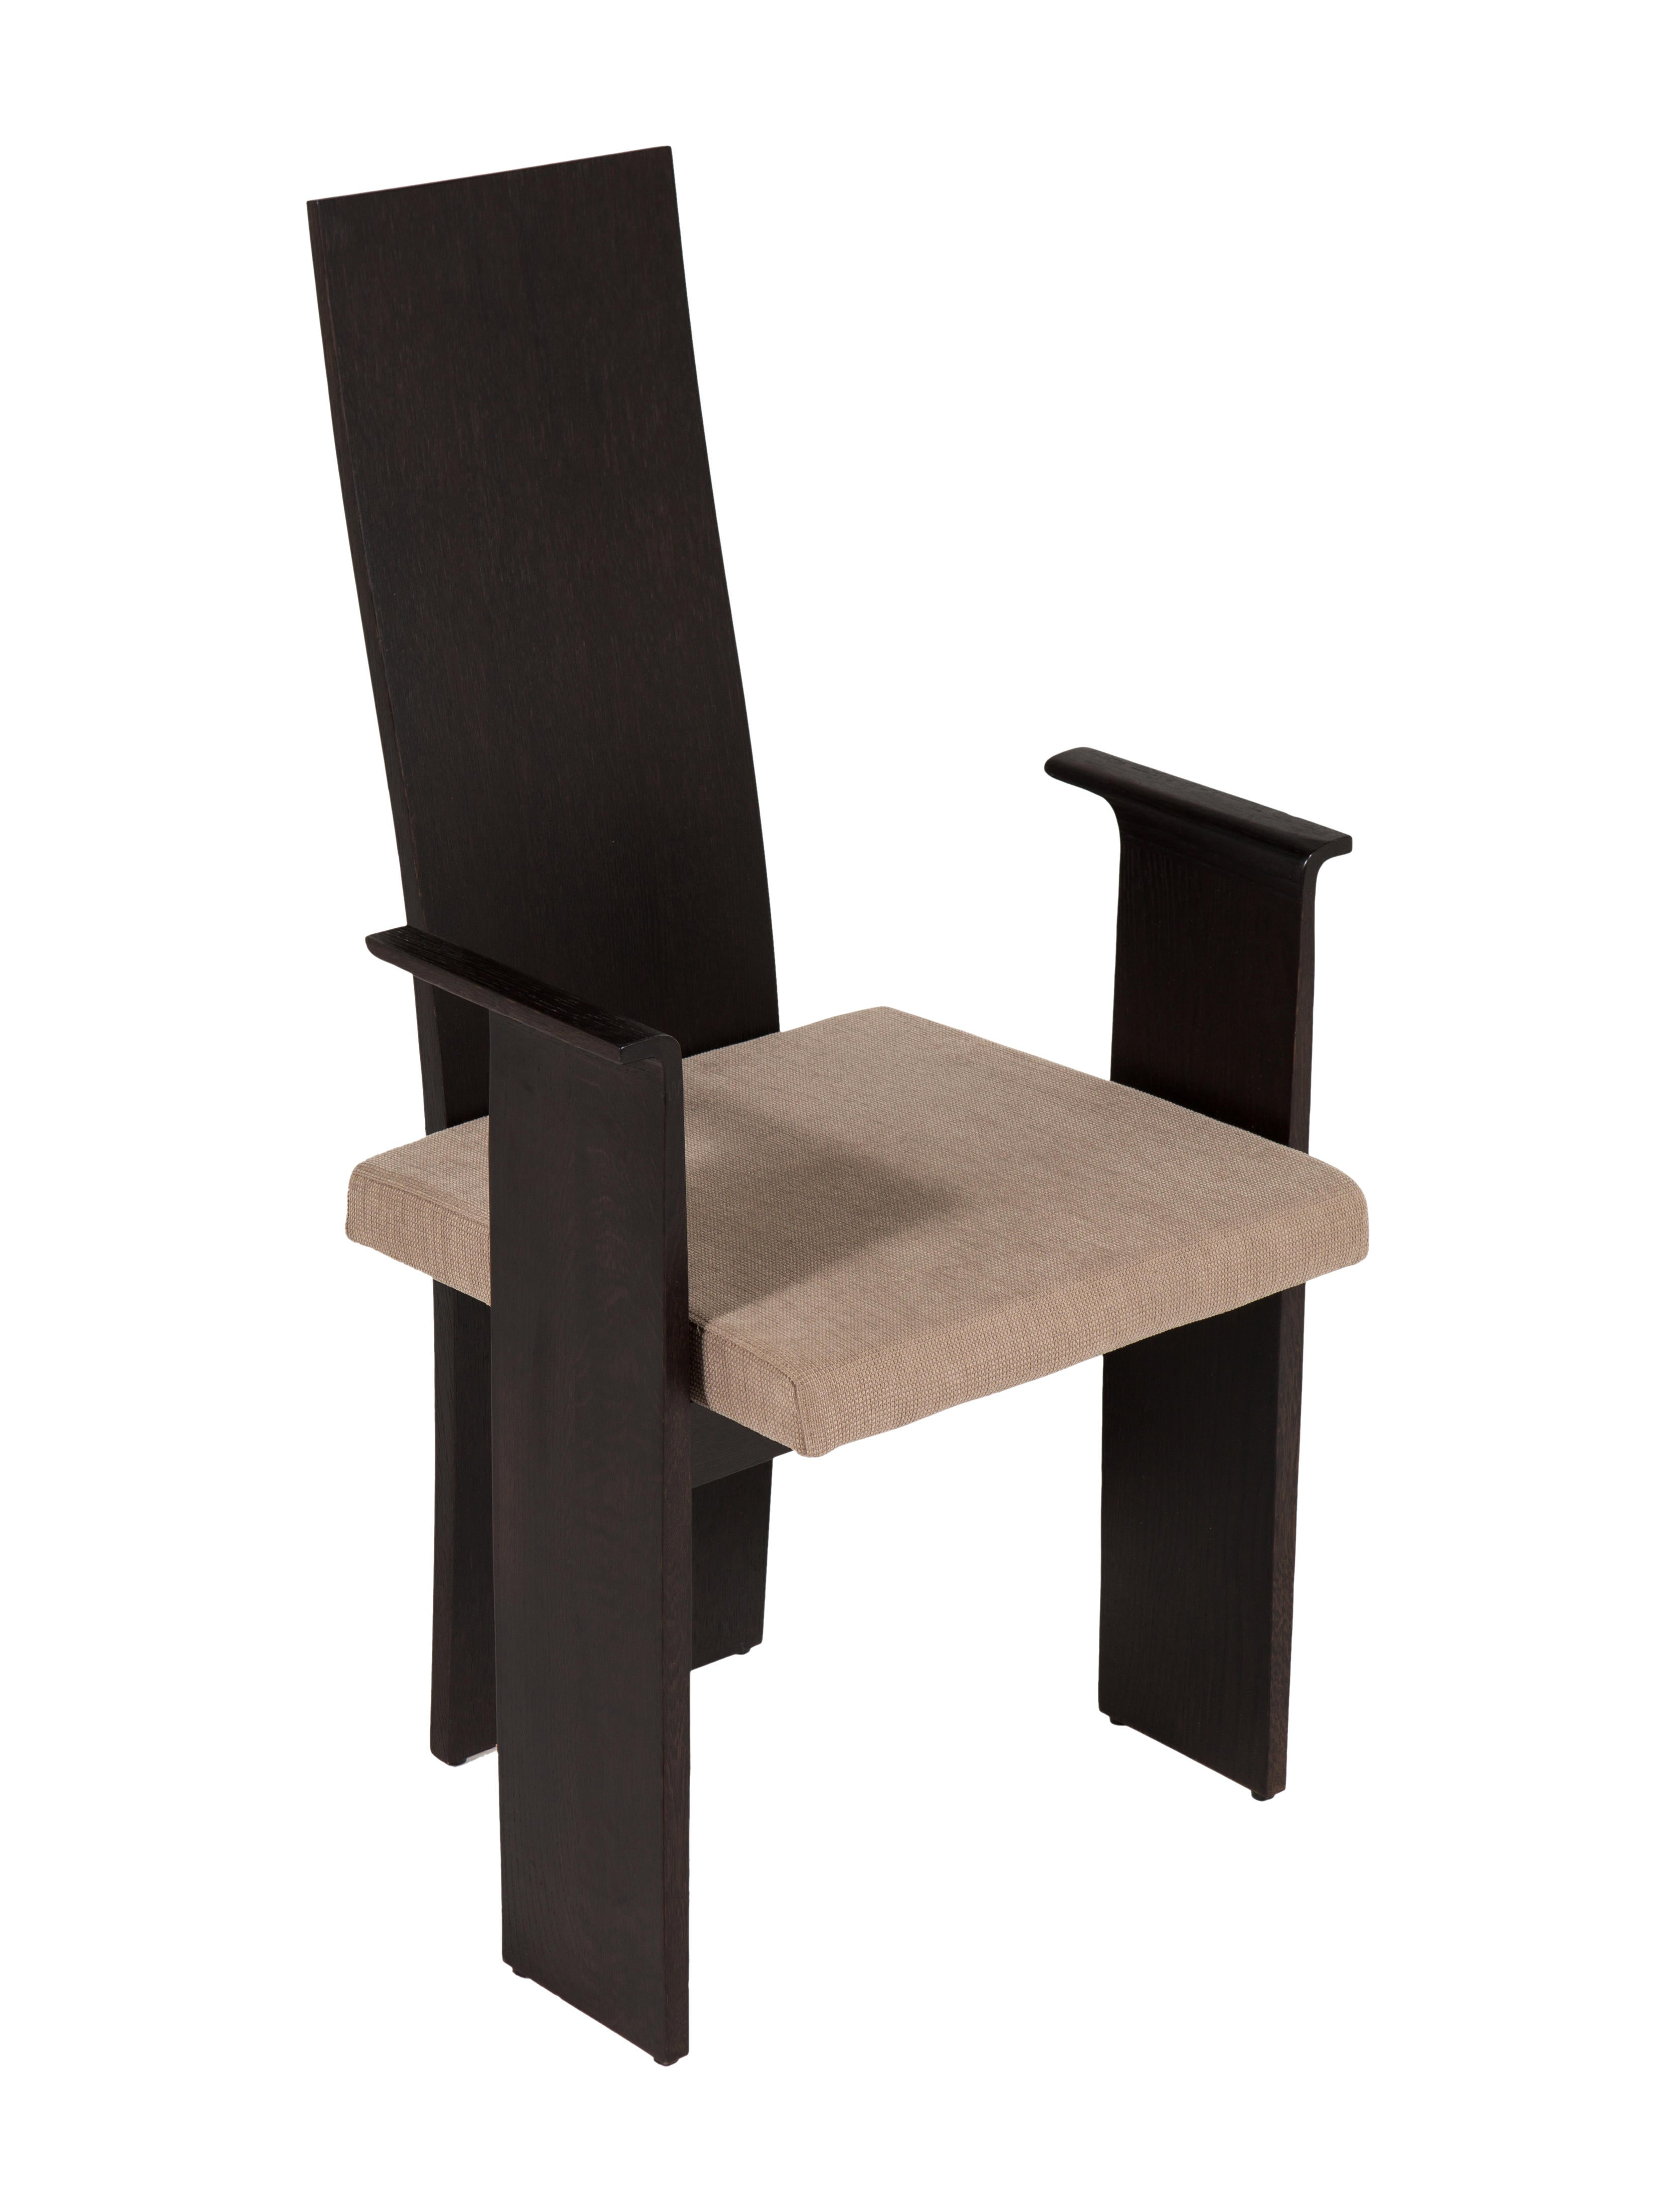 A Sibau Dining Chairs Furniture Chair20408 The Realreal